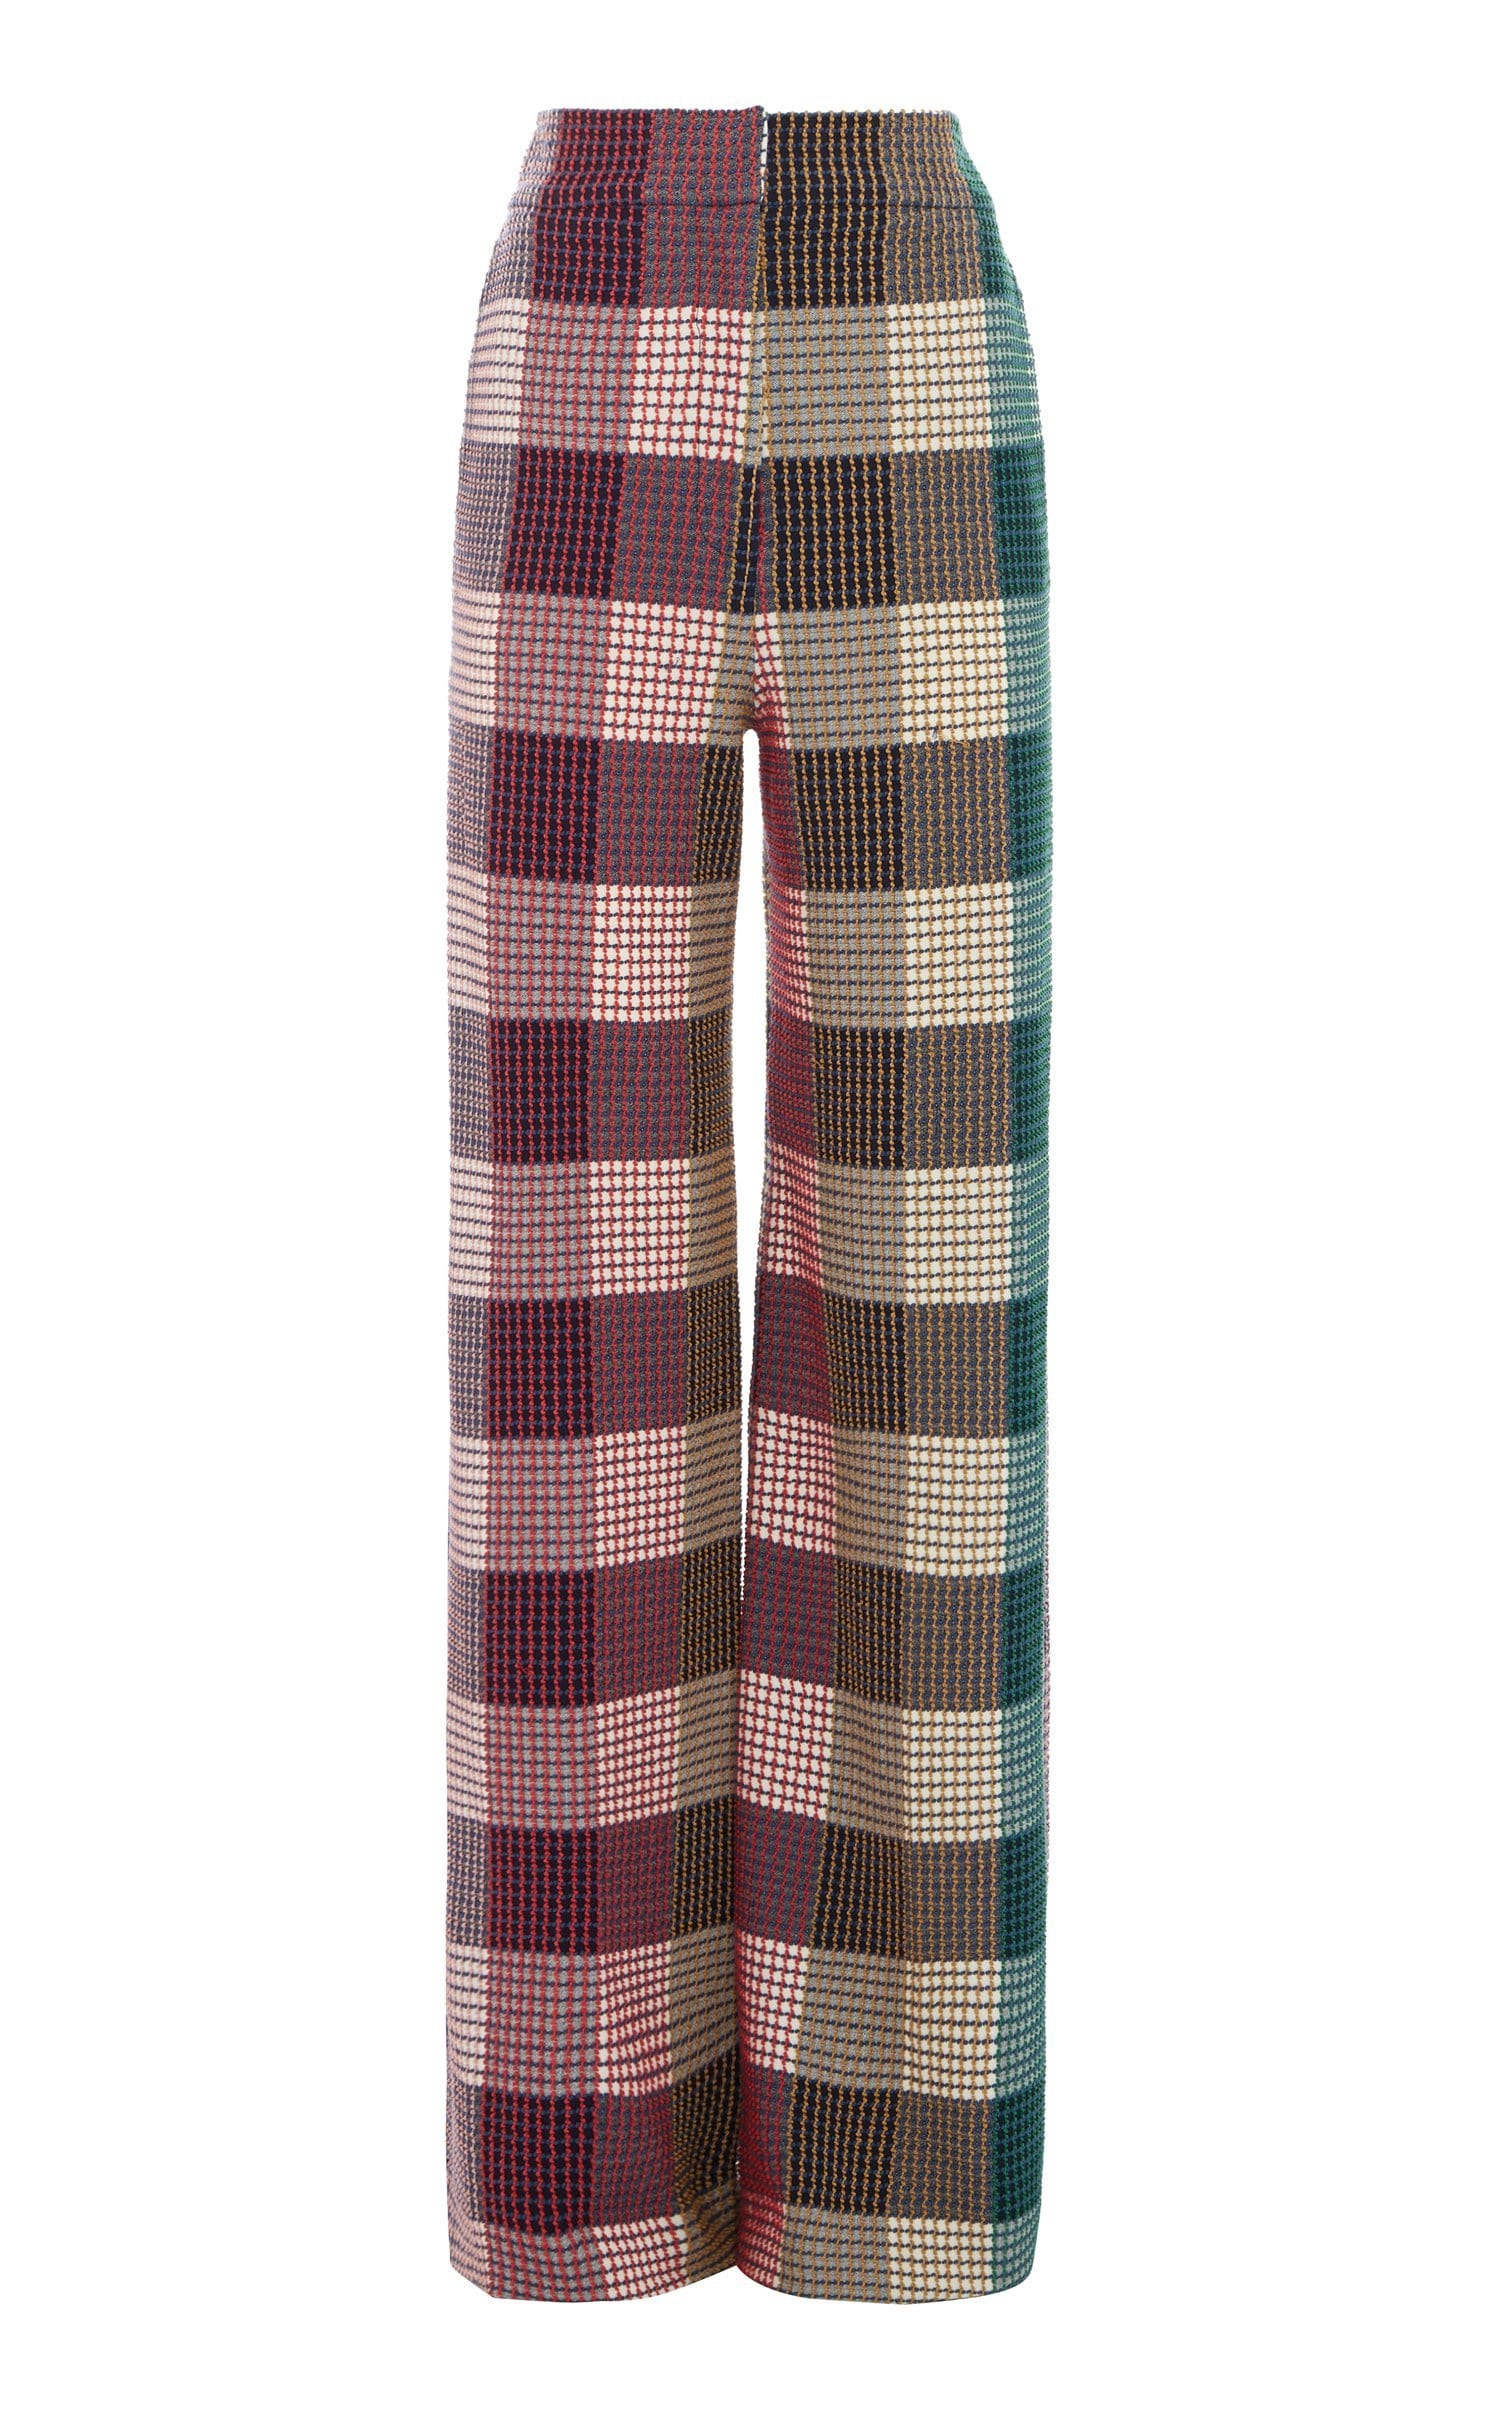 Delano Trouser In Multi from Roland Mouret